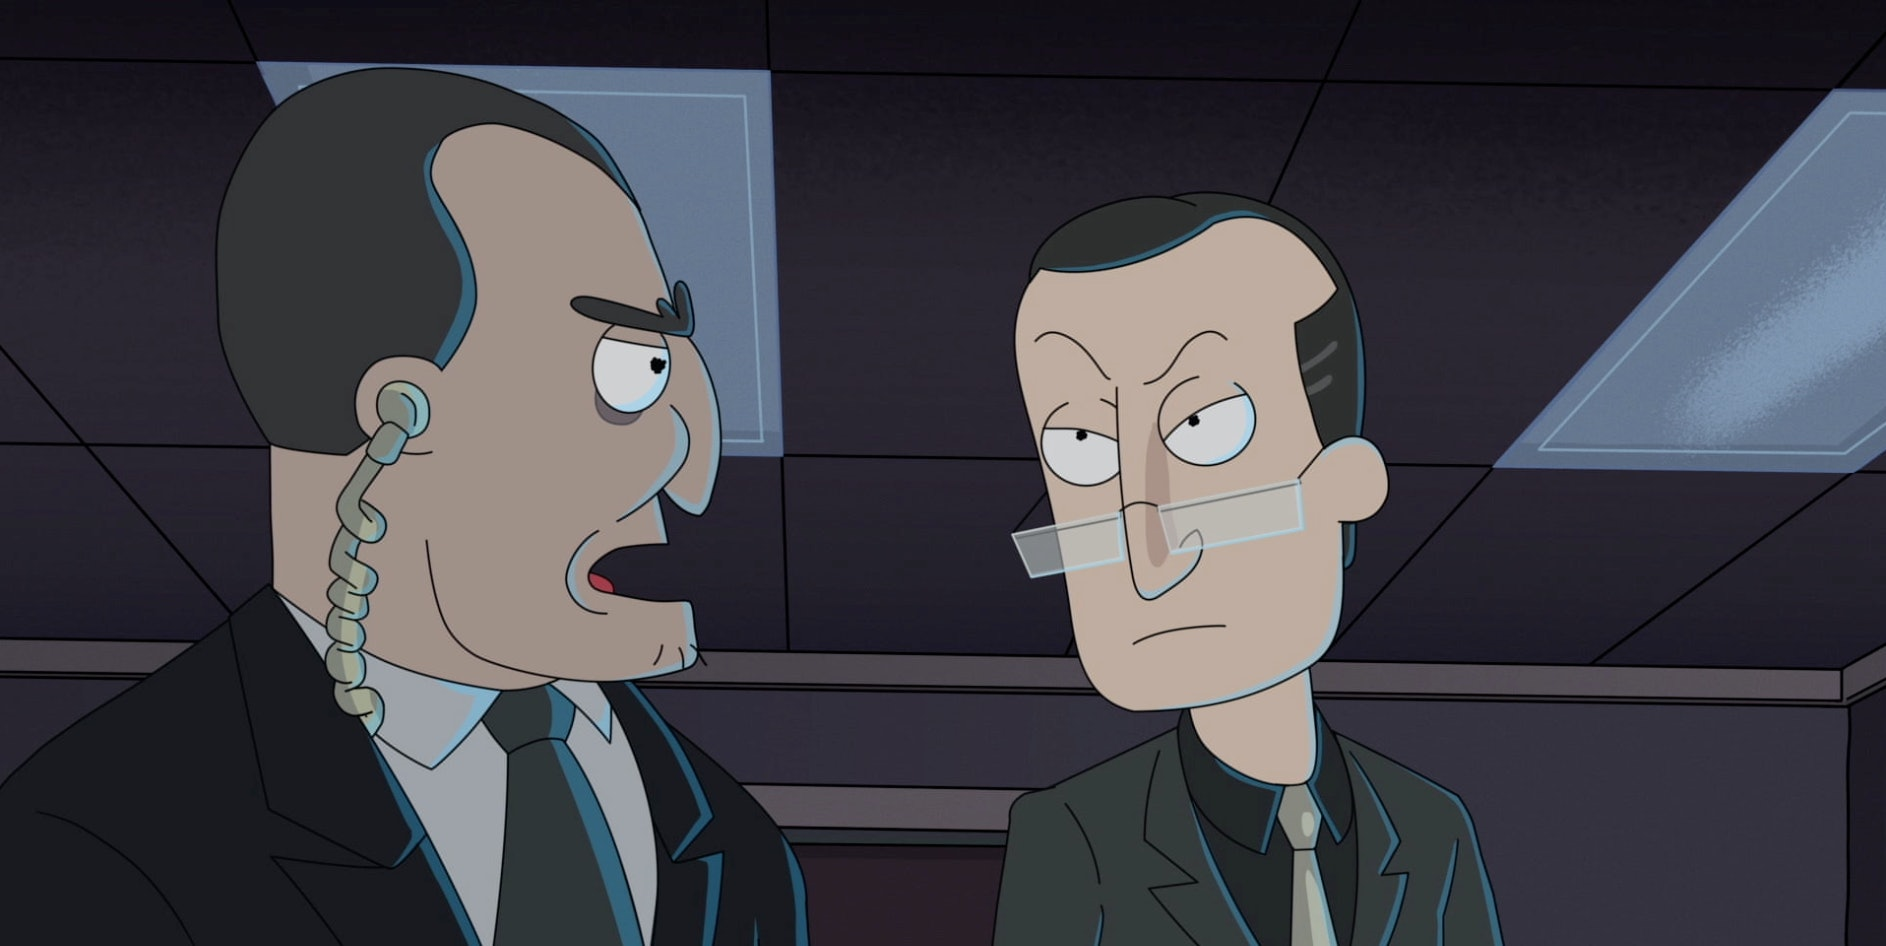 Peter Serafinowicz voices the villainous leader of the compound Pickle Rick accidentally invades.